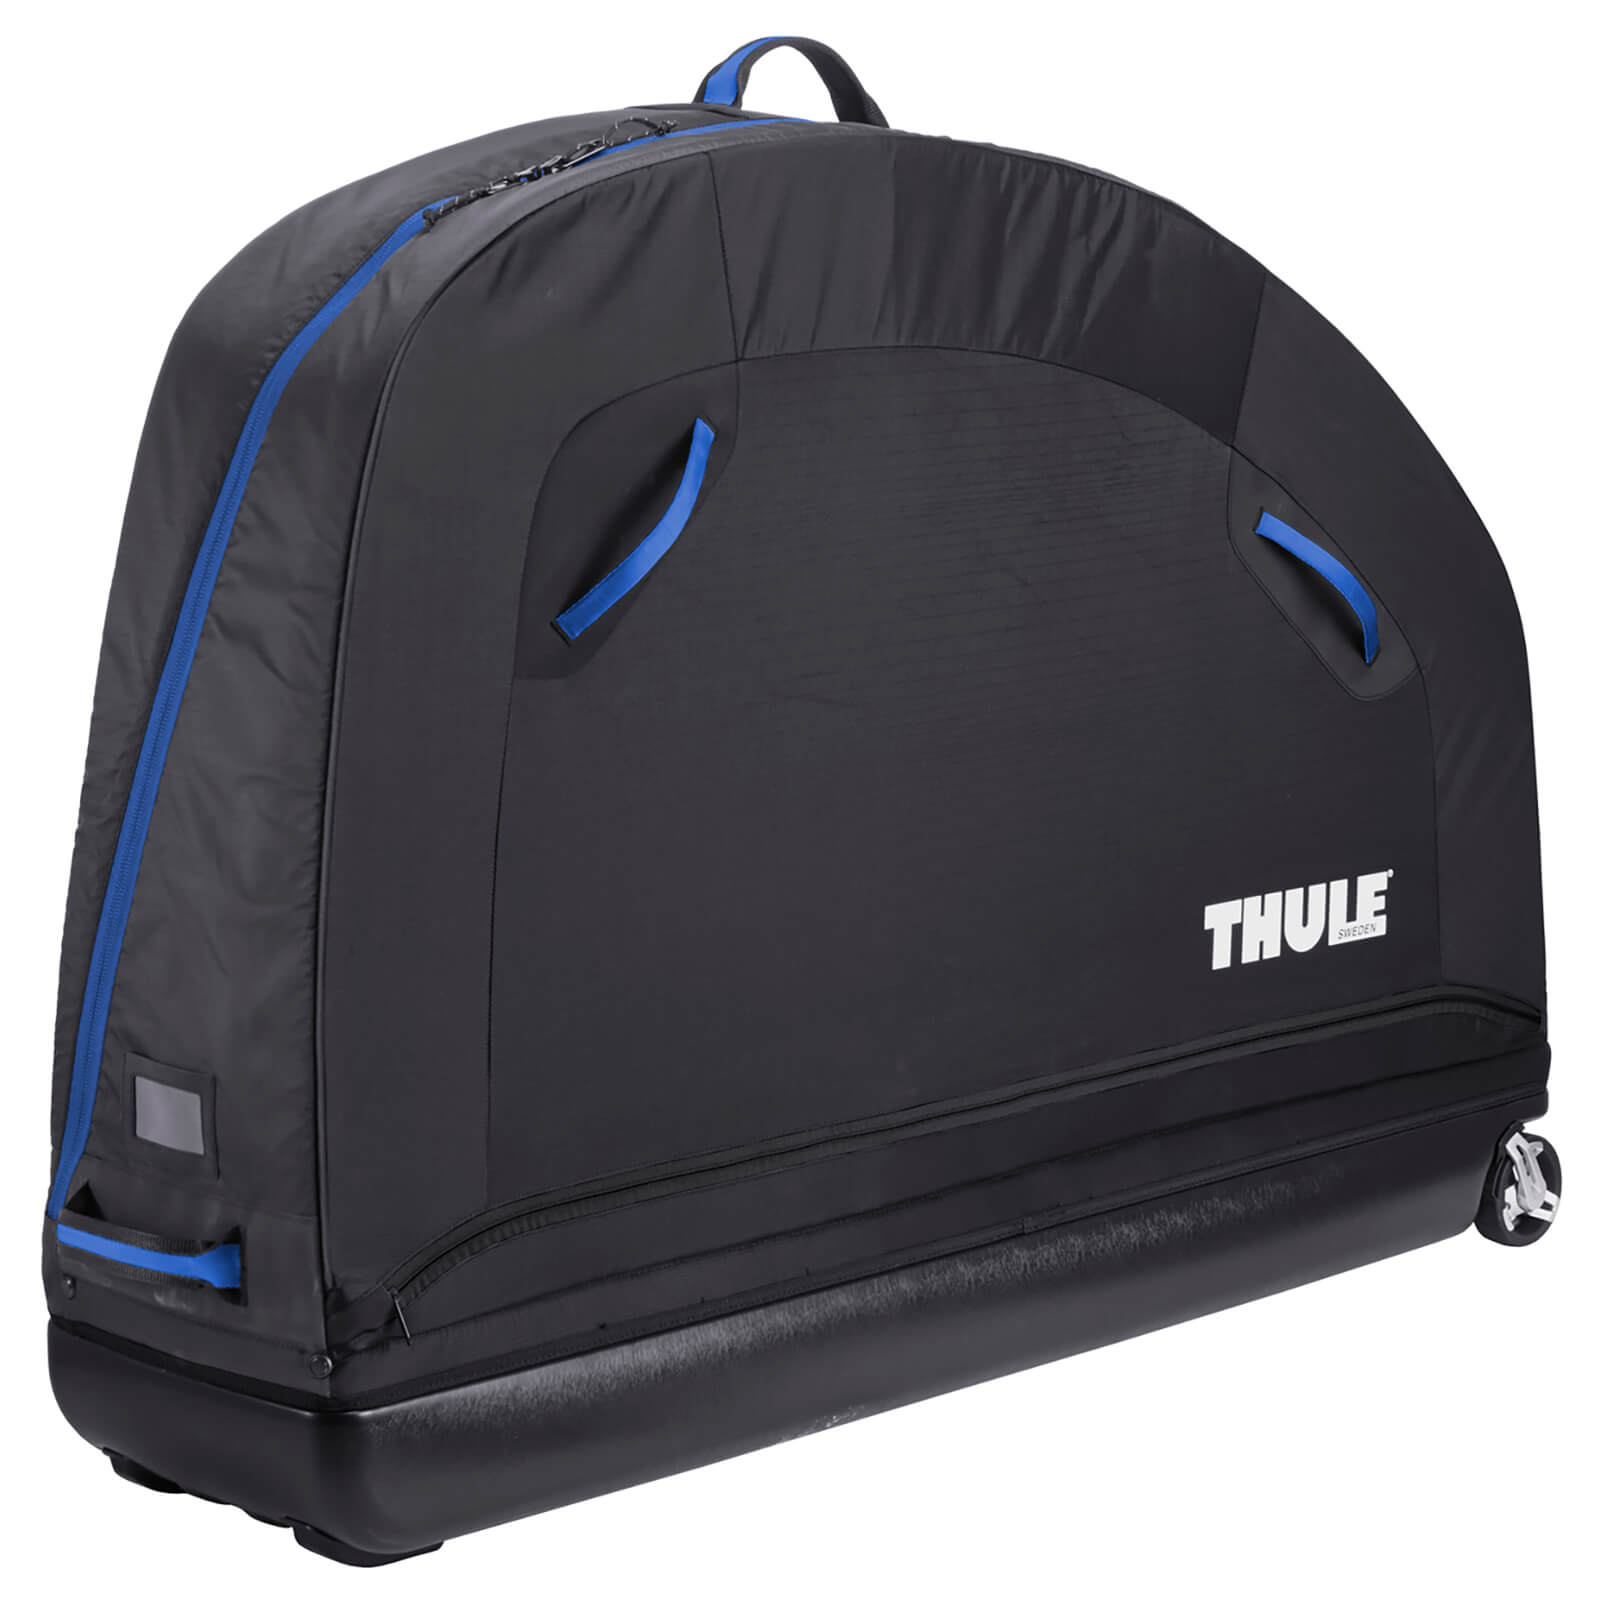 Thule RoundTrip Pro Semi Rigid Bike Case | Cykelkuffert